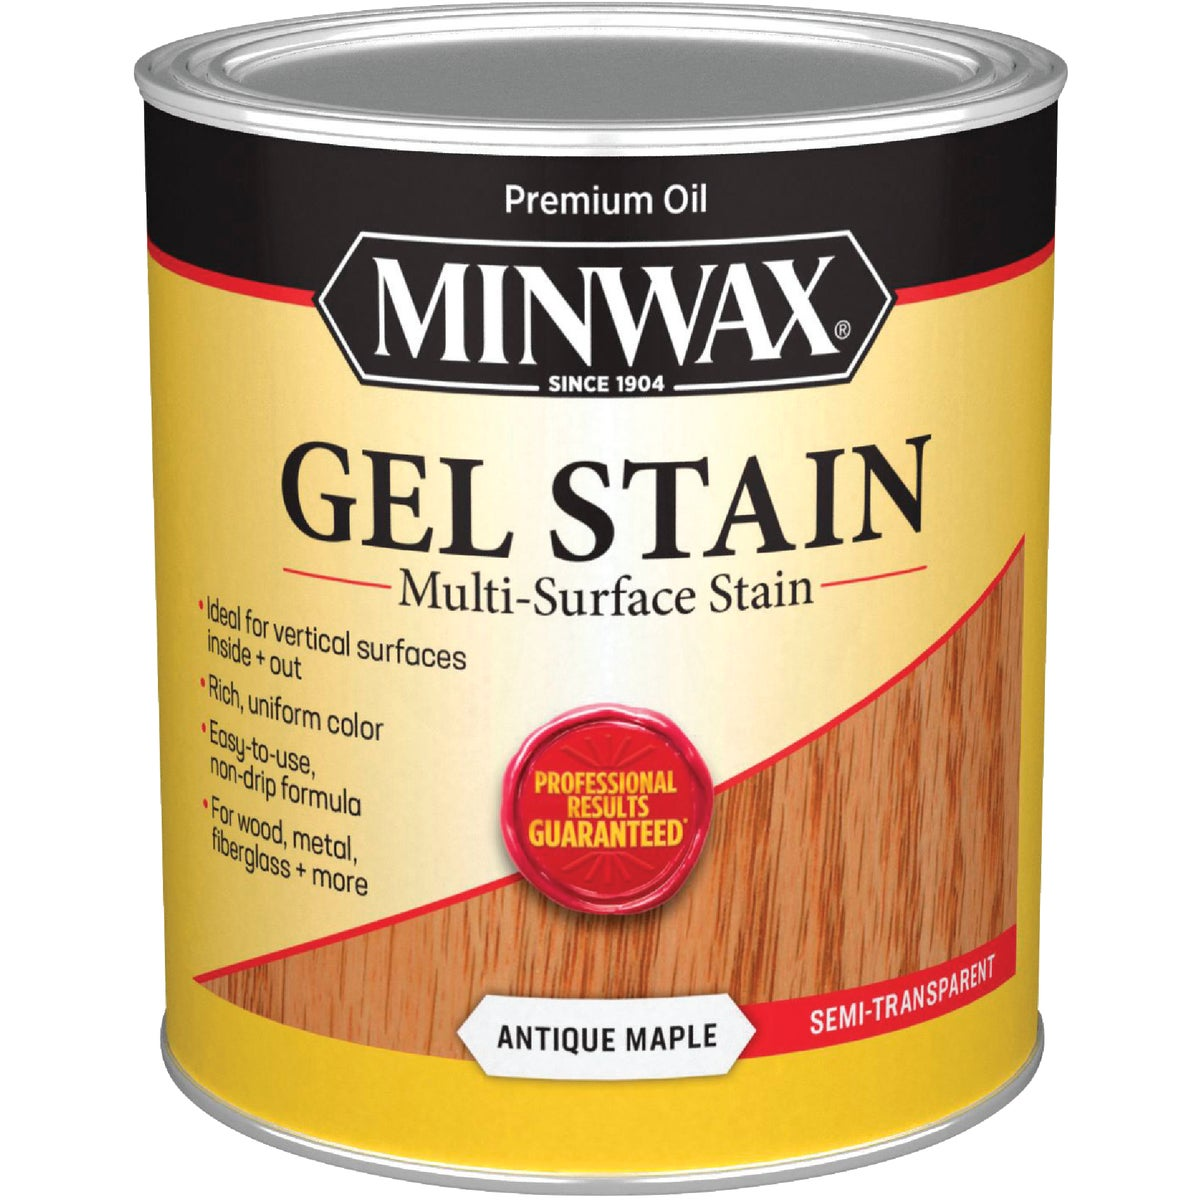 ANTIQUE MAPLE GEL STAIN - 66030 by Minwax Company